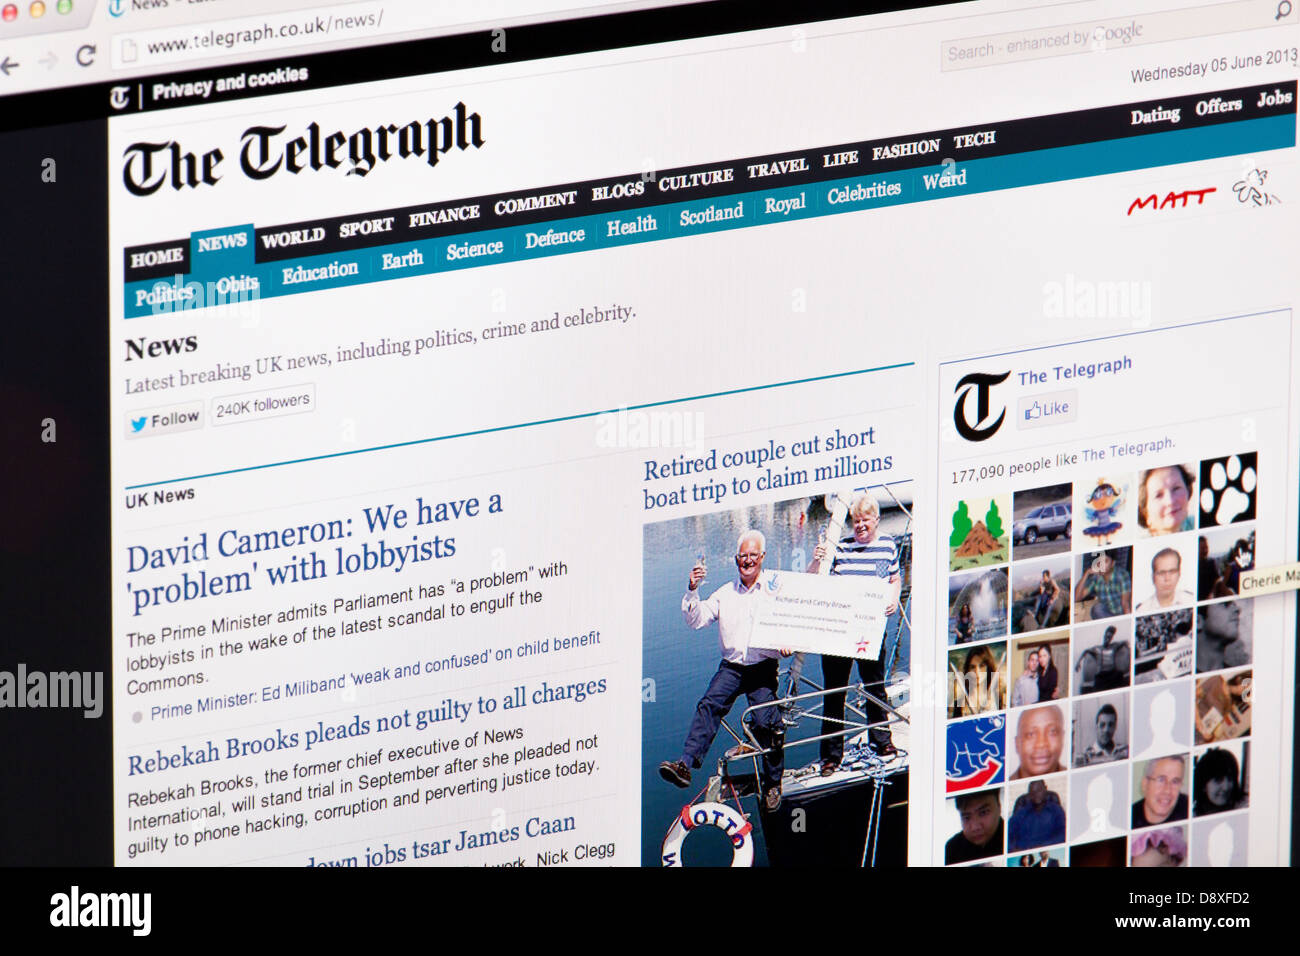 The Telegraph Newspaper Website or web page on a laptop screen or computer monitor - Stock Image